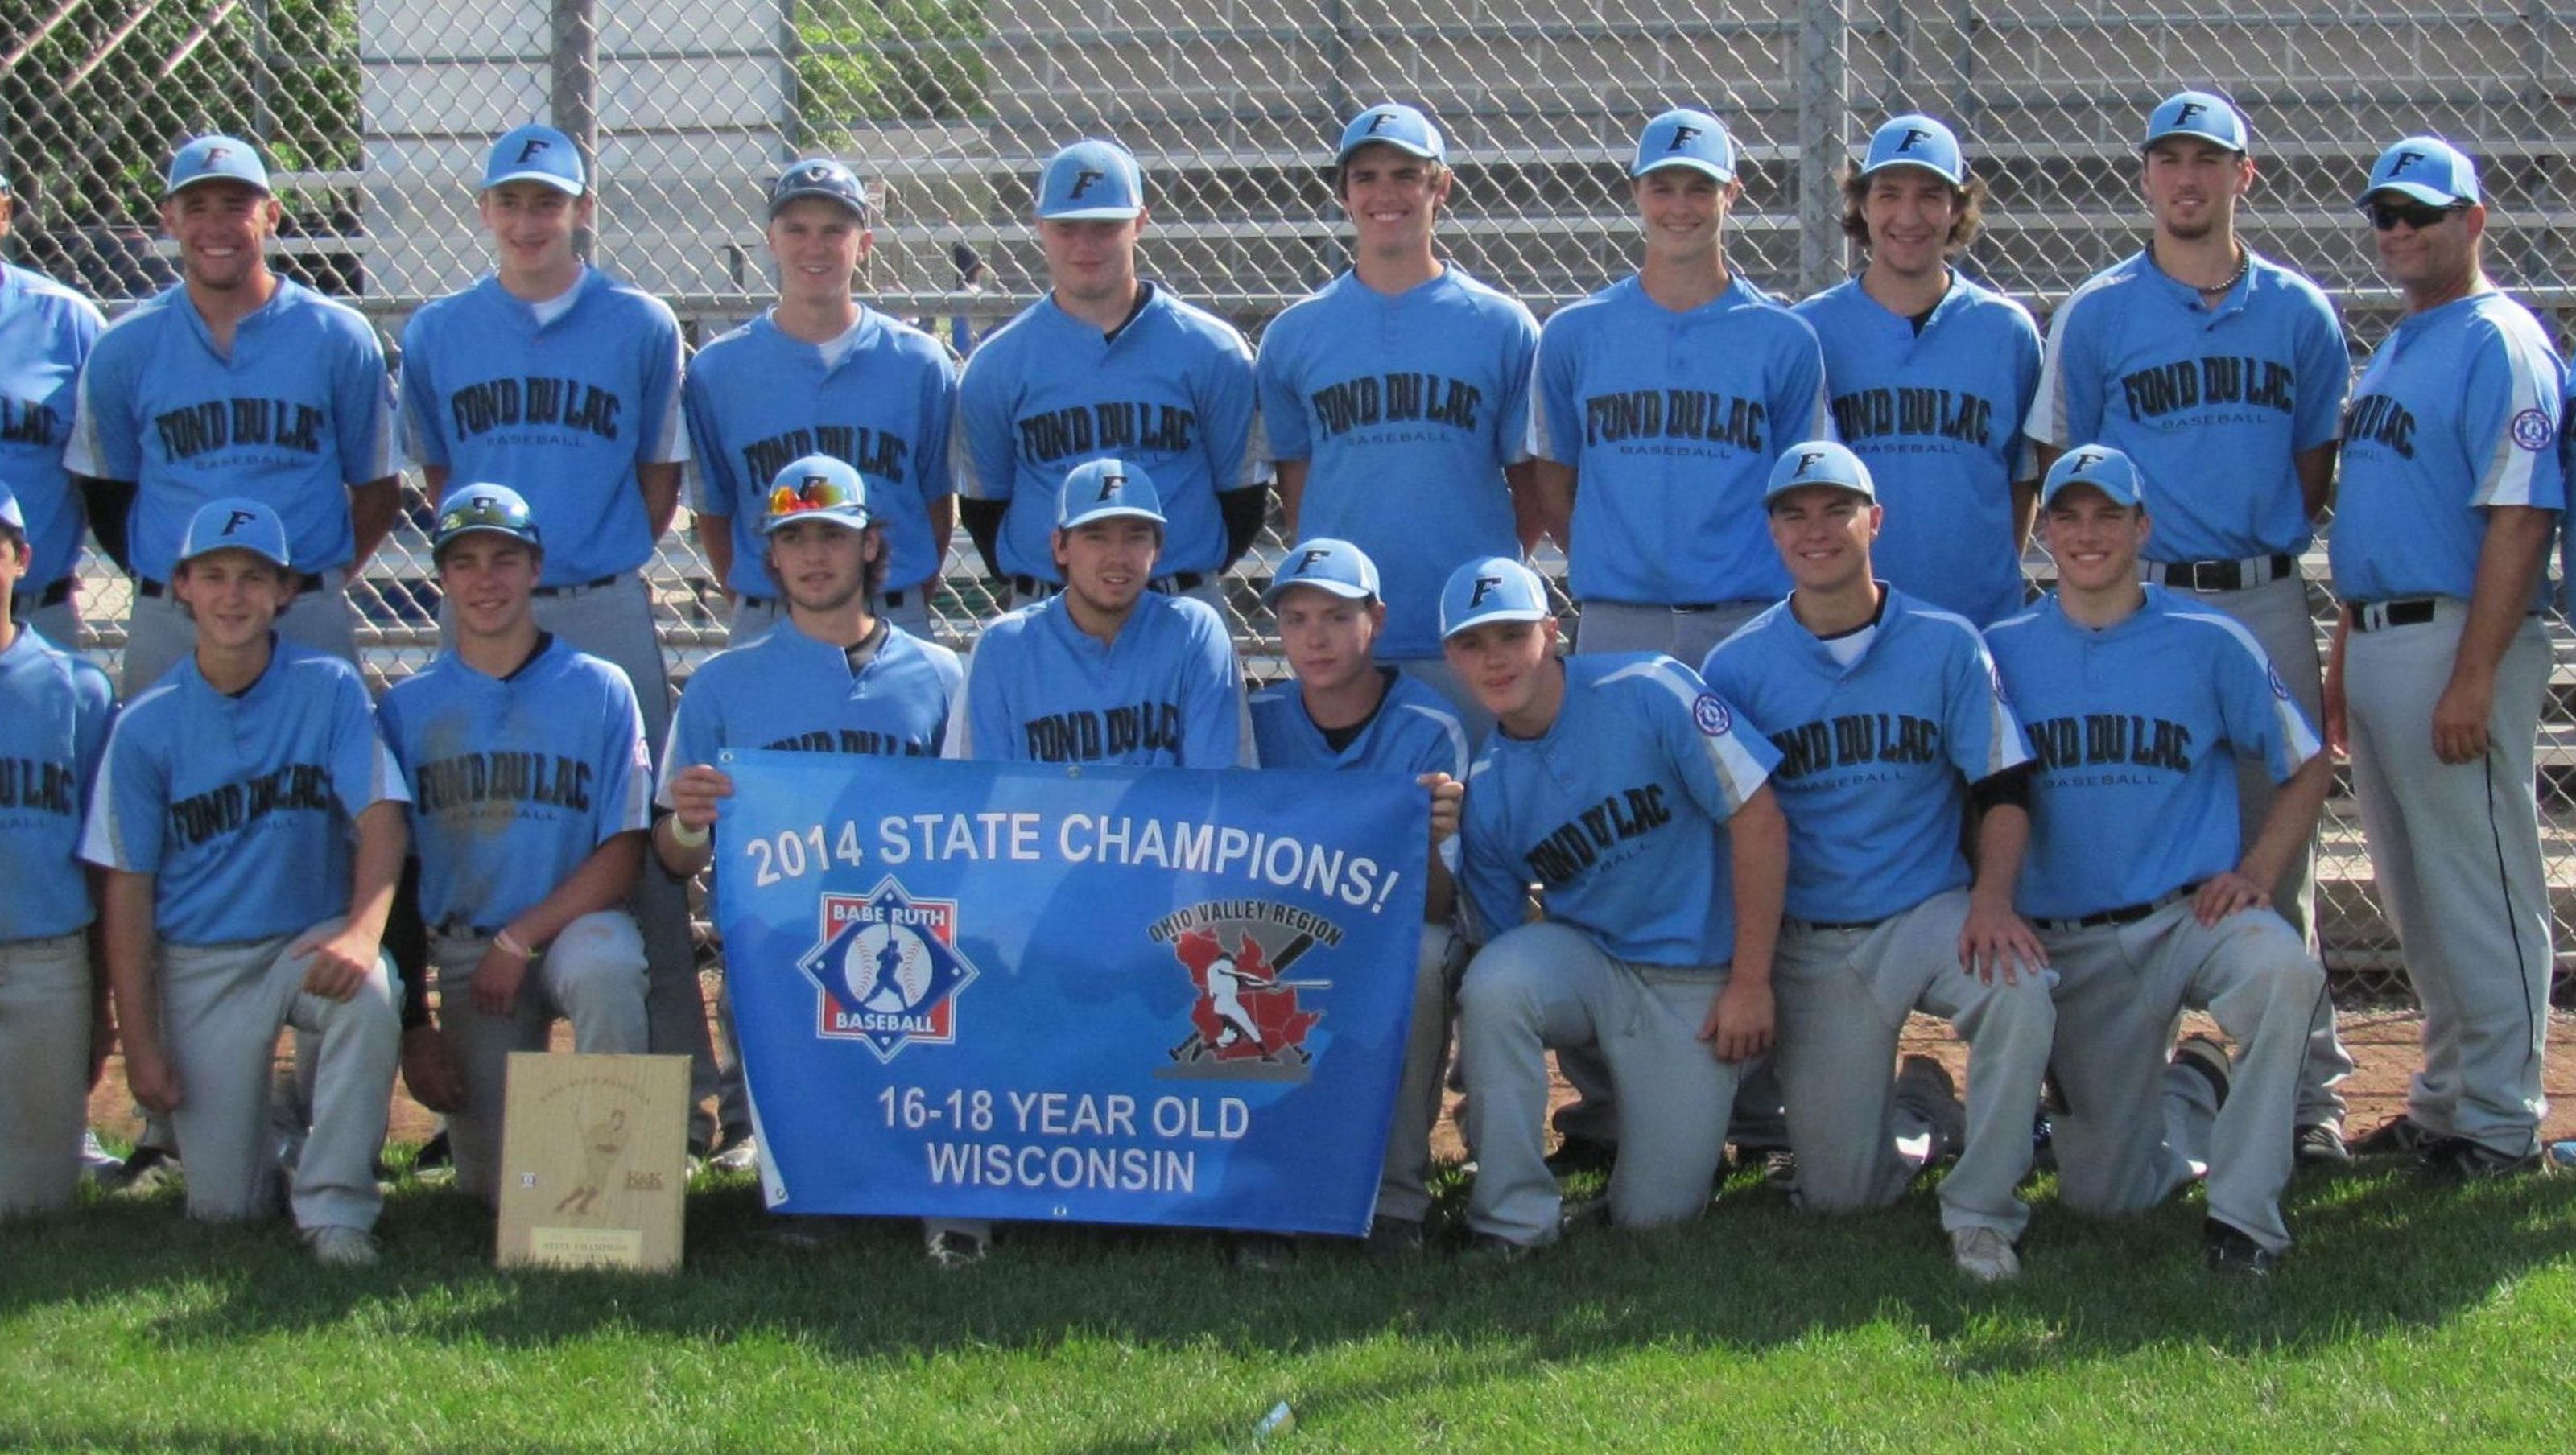 fdl team deemed state champs in senior babe ruth baseball tourney